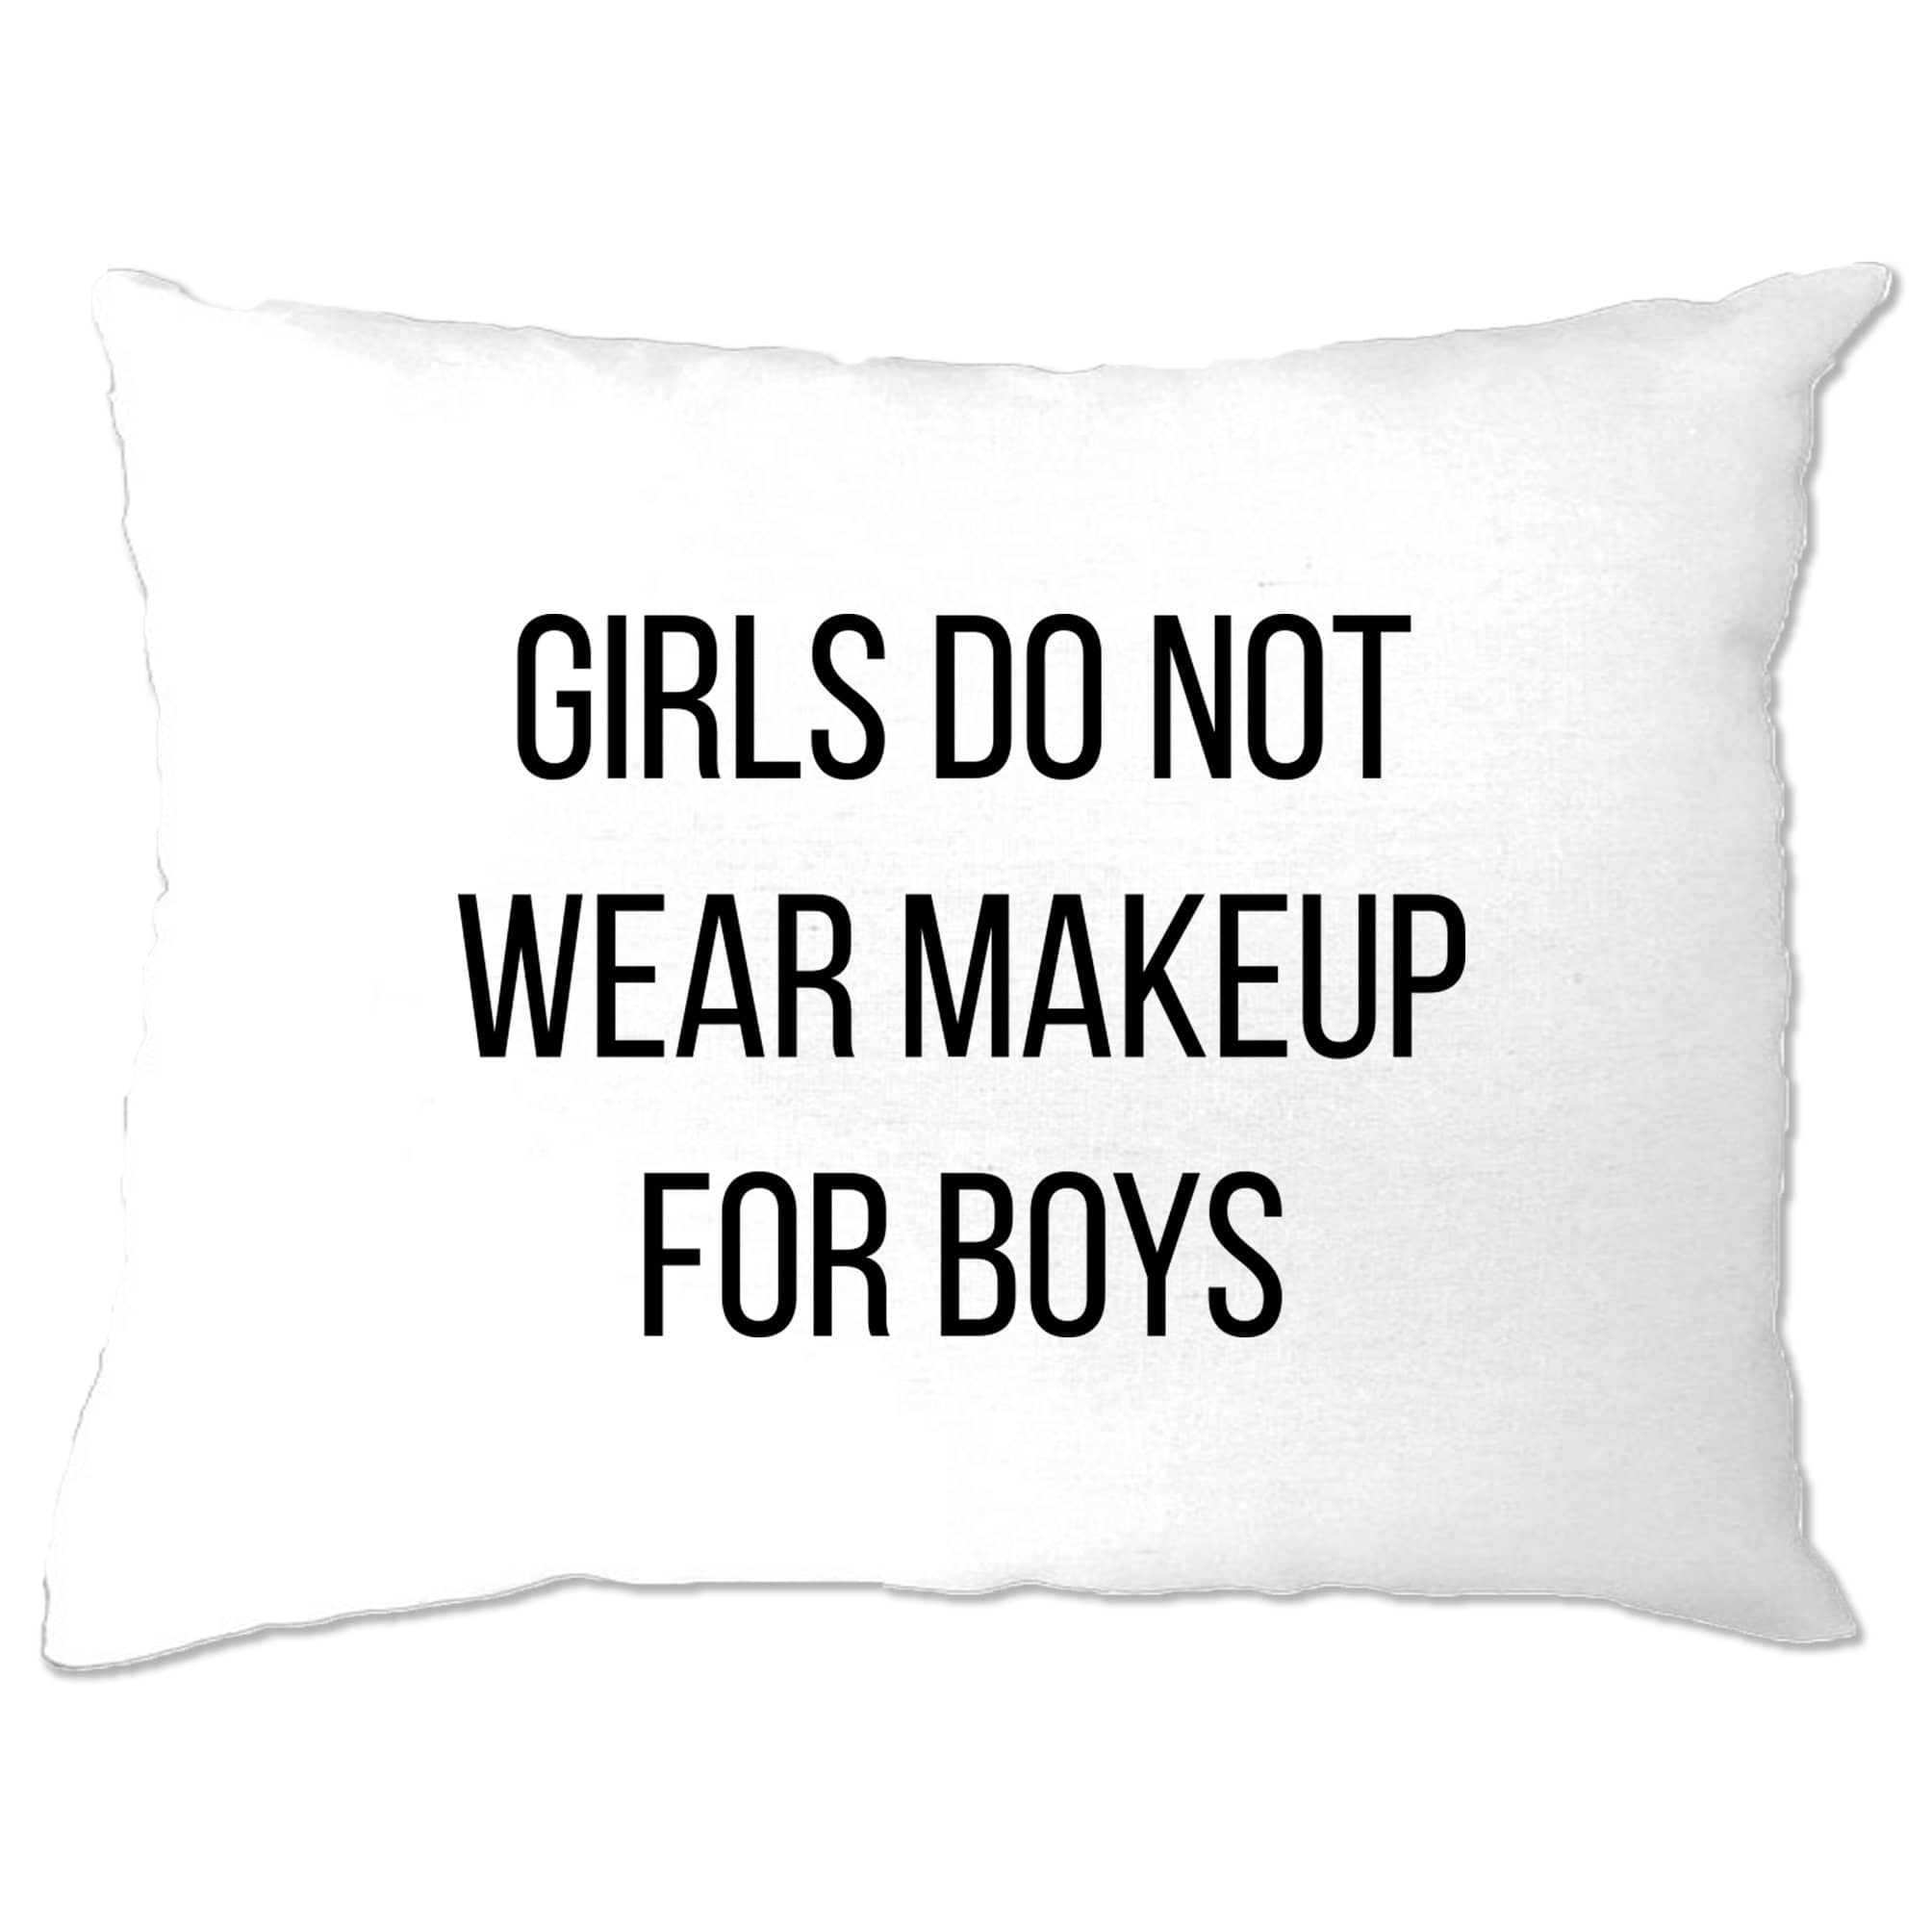 Feminist Pillow Case Girls Do Not Wear Makeup For Boys